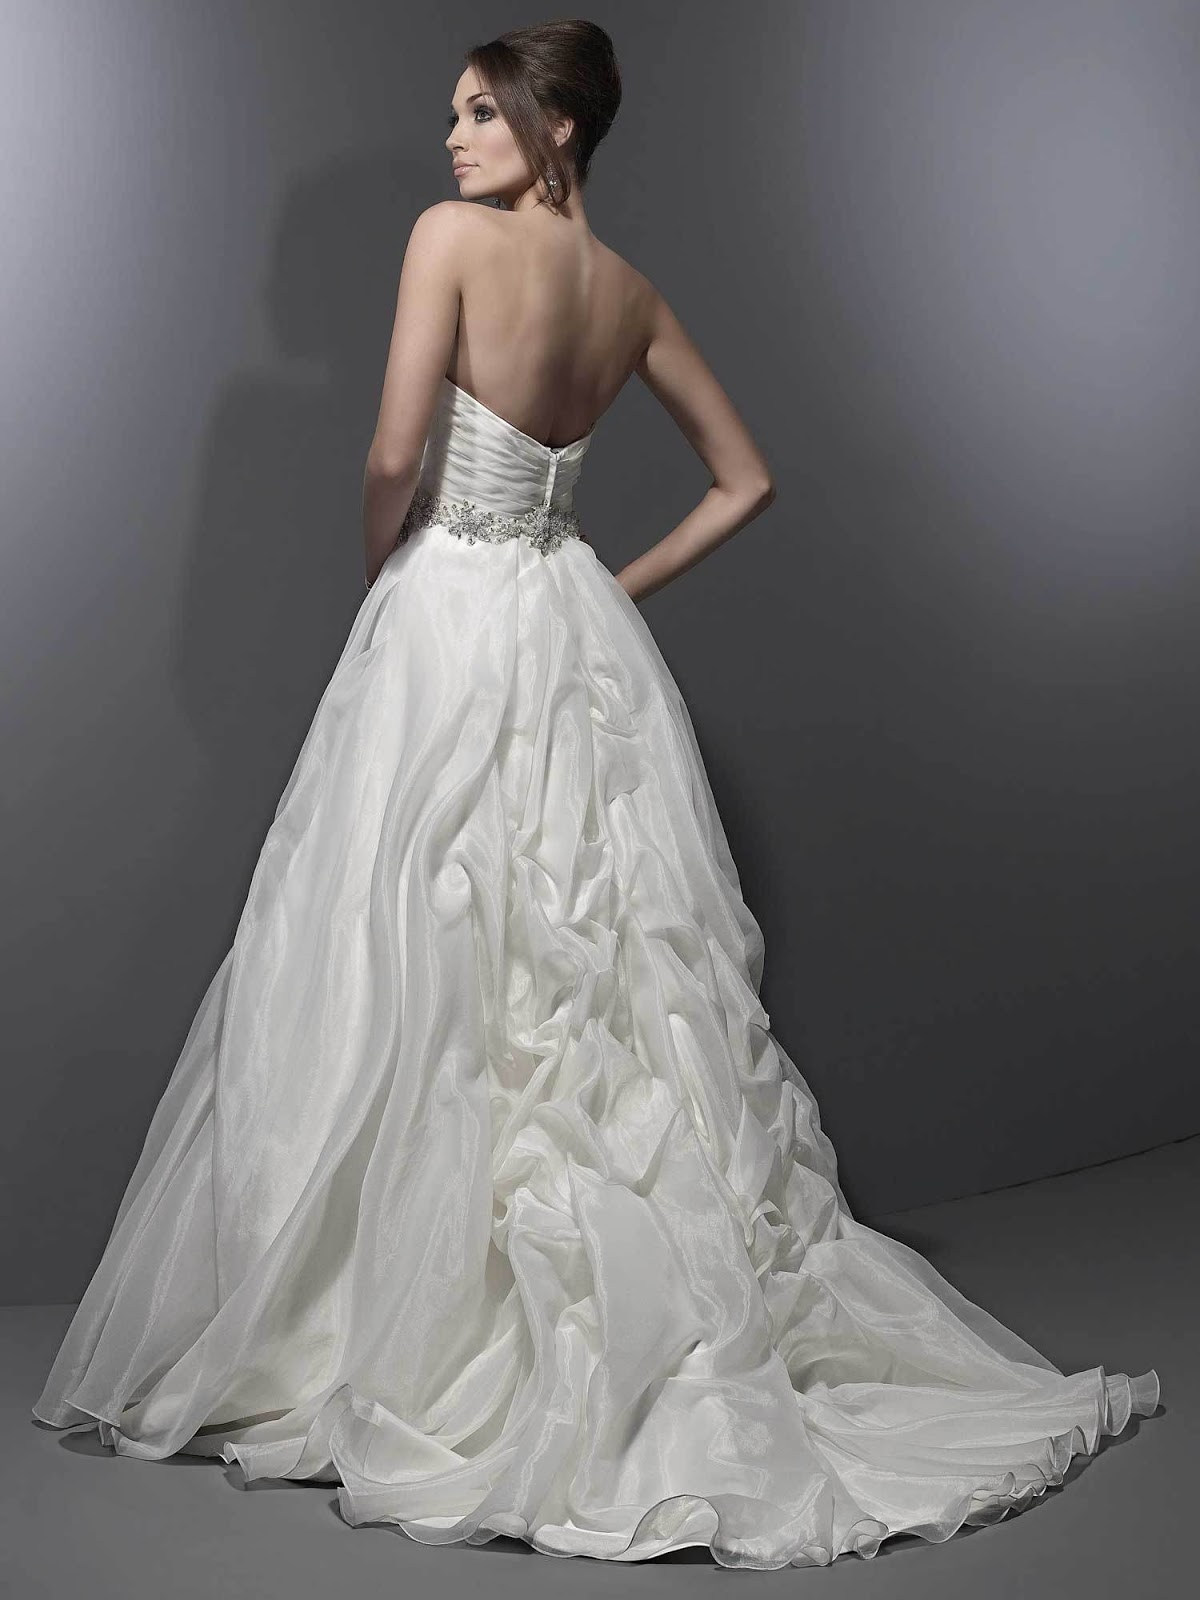 kenneth winston wedding dresses photo - 1